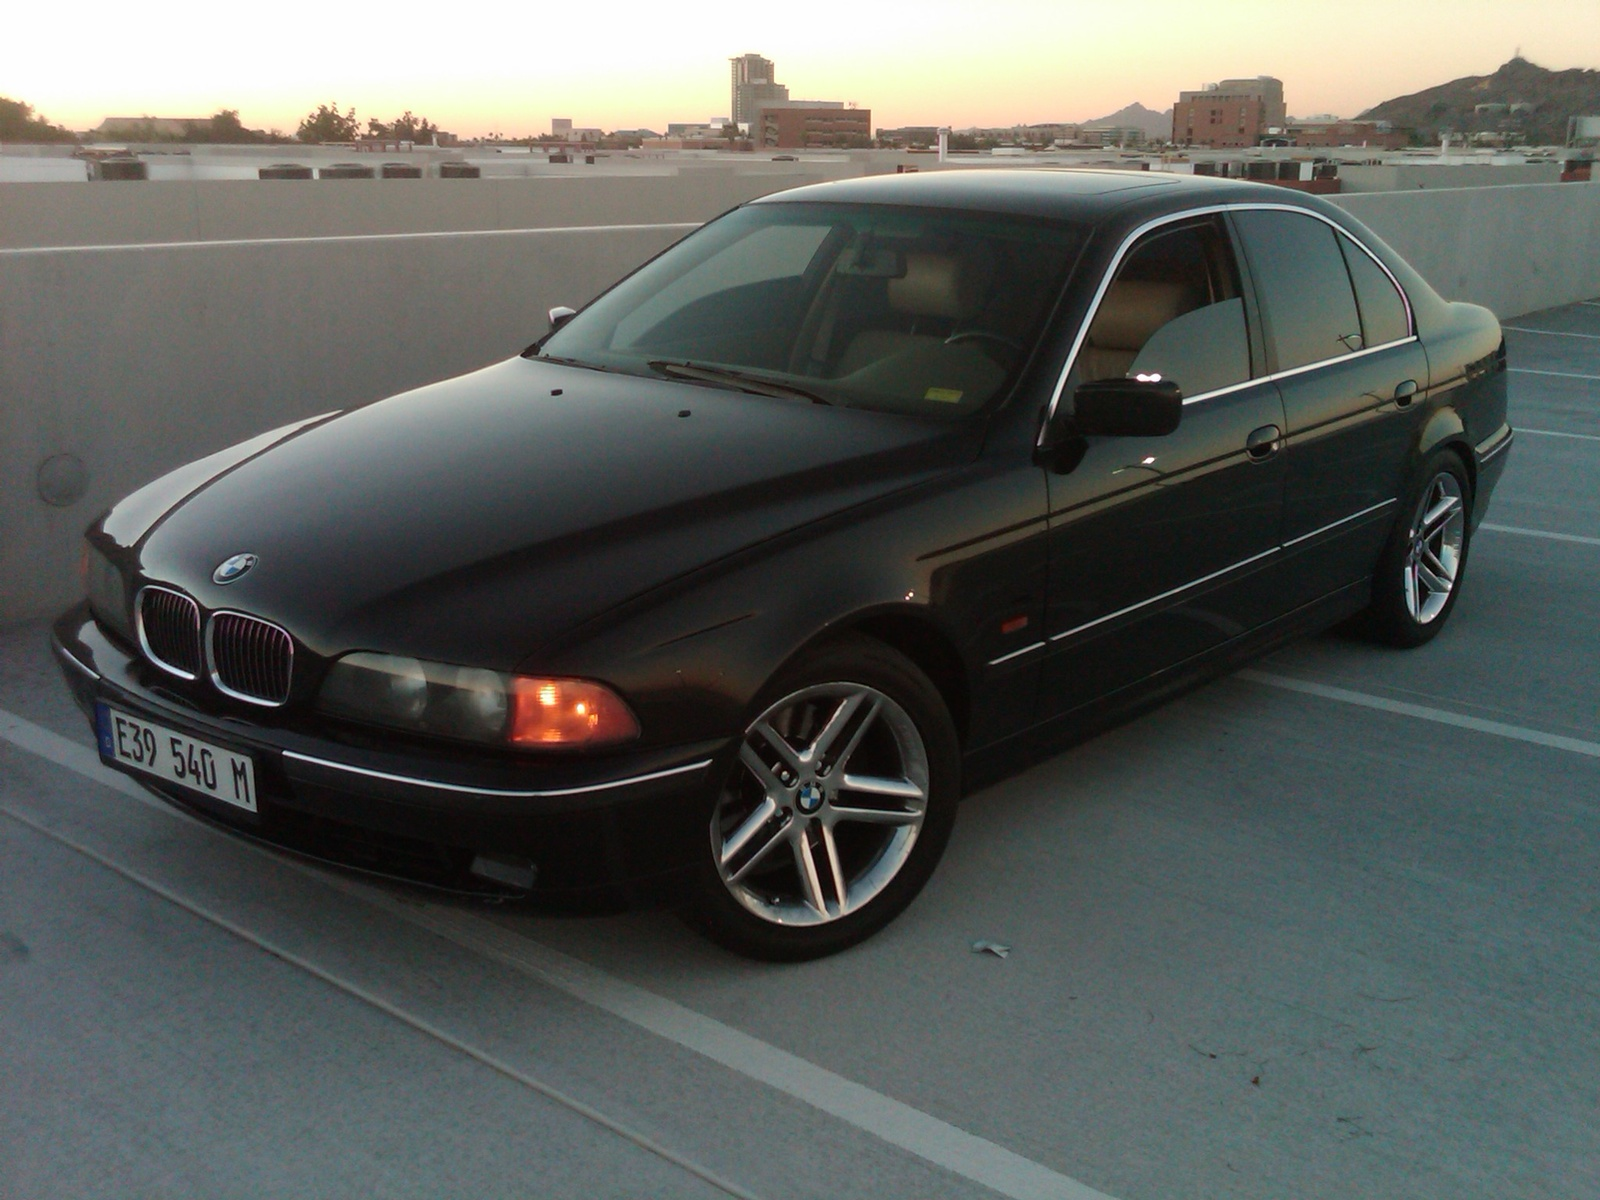 bmw 540i 1997 review amazing pictures and images look at the car. Black Bedroom Furniture Sets. Home Design Ideas